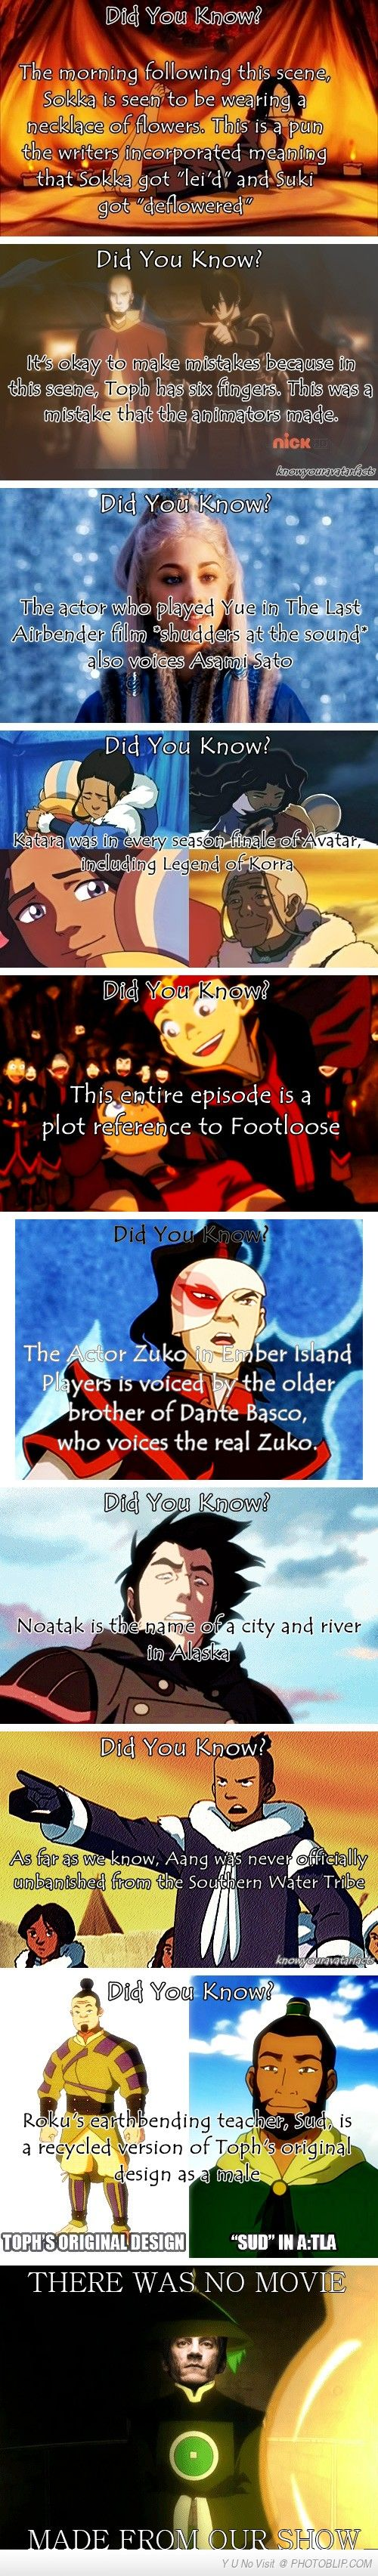 Avatar - The Last Airbender (and The Legend Of Korra) Fun Facts Dat first one tho